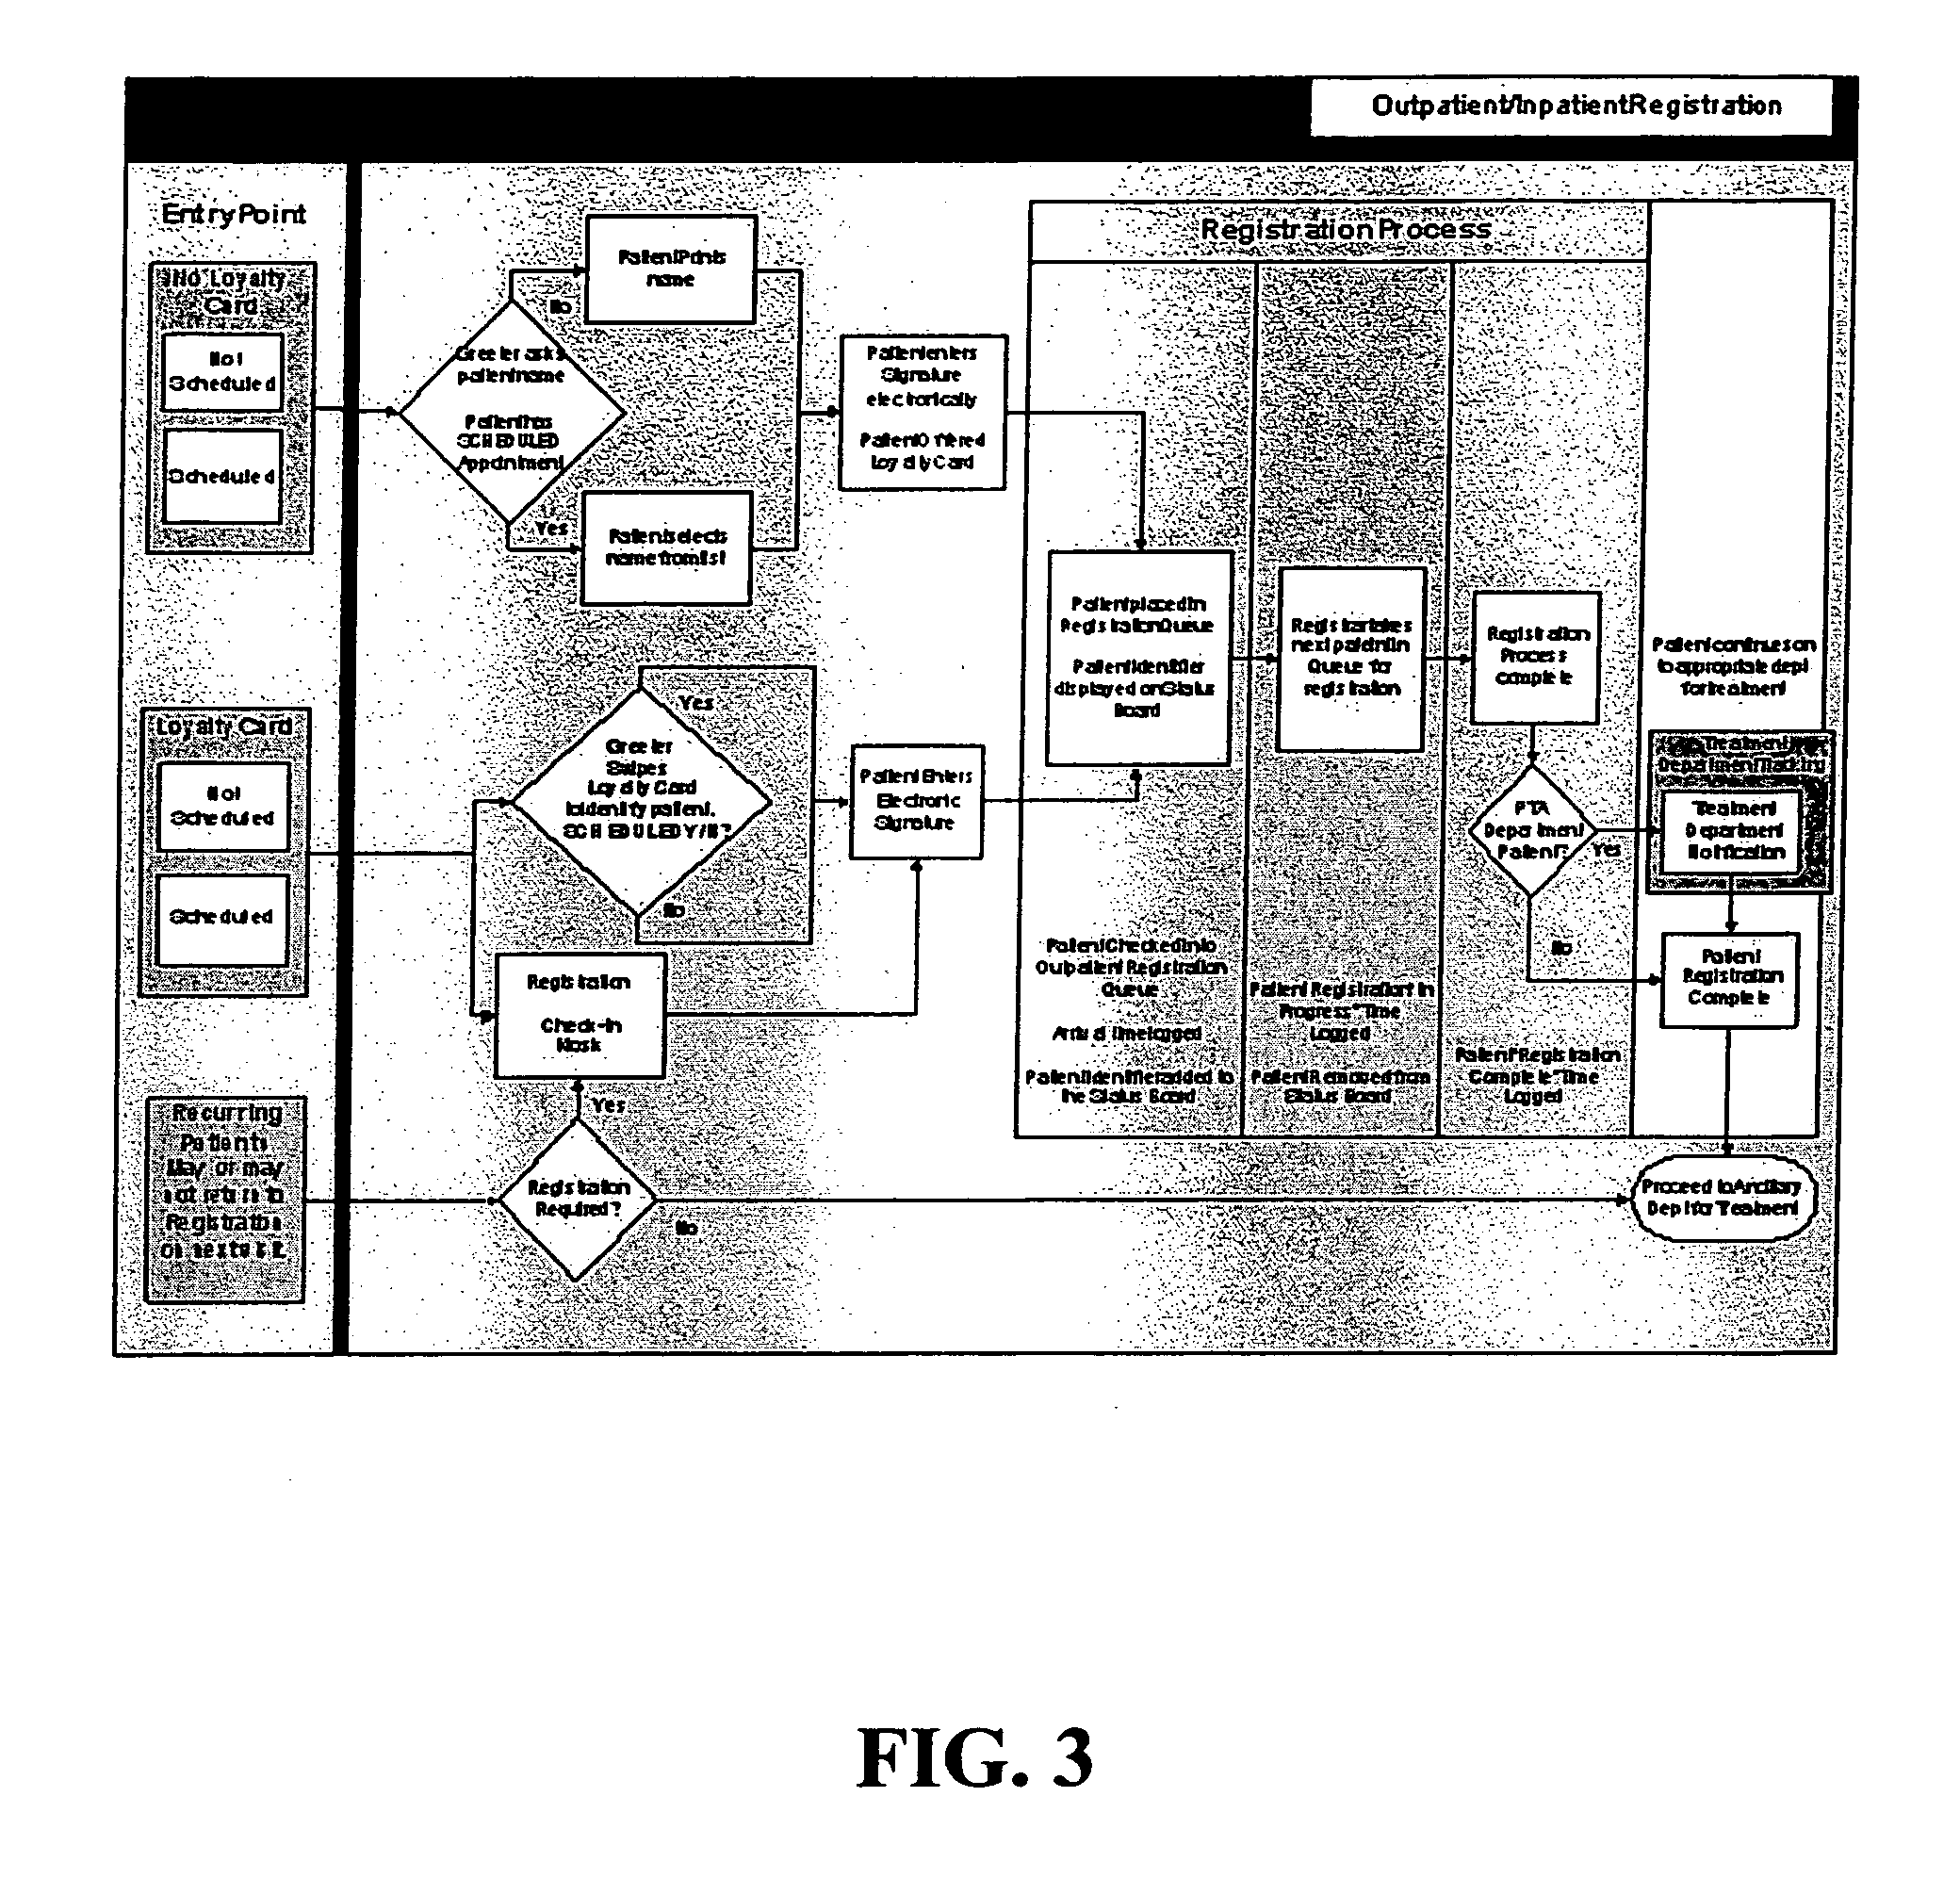 Er Diagram For Payroll System Patent Automated Patient Management System